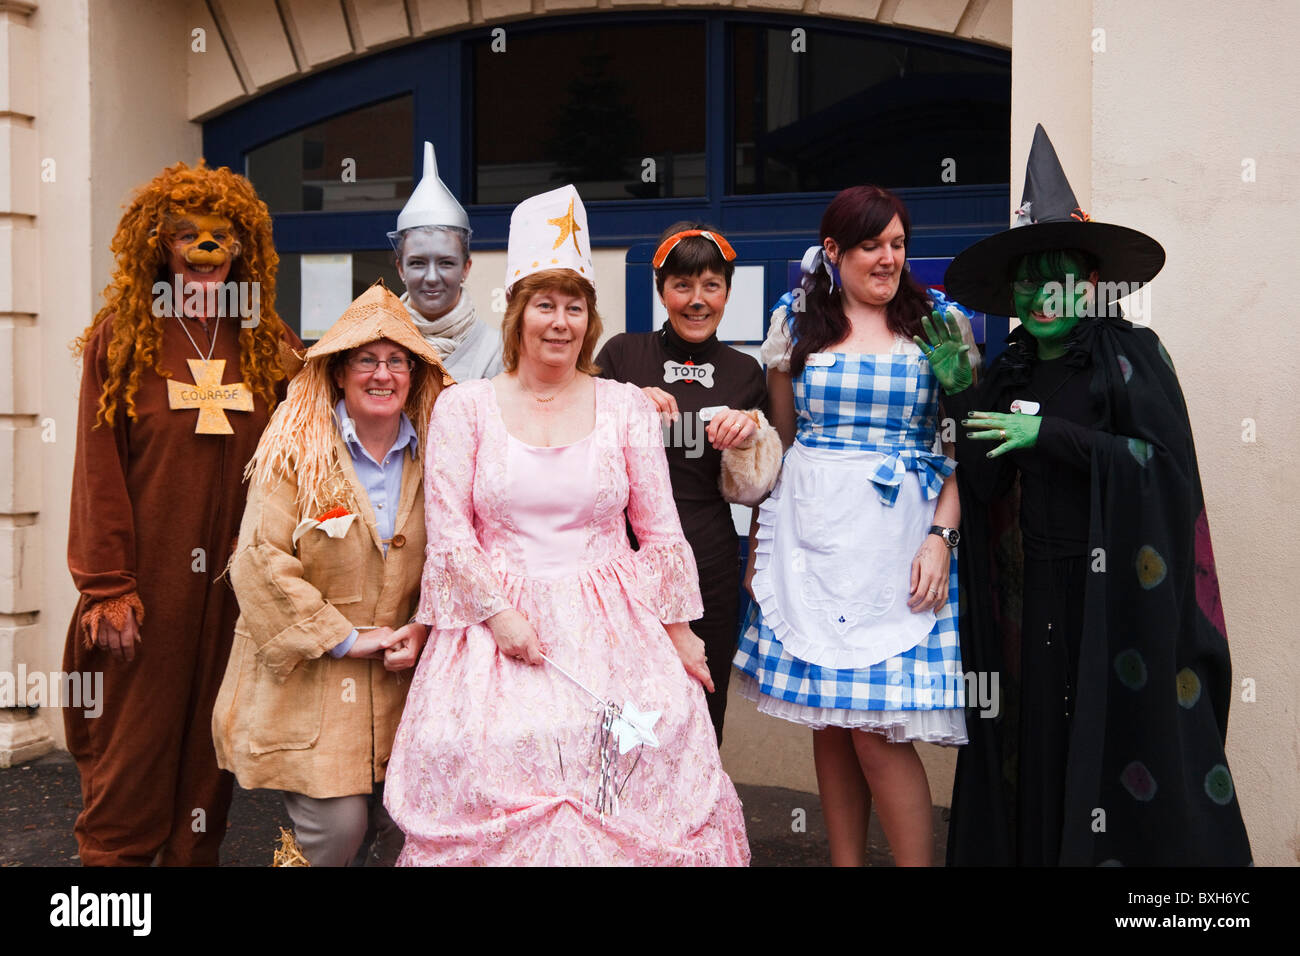 People fund raising for Children in Need charity wearing fancy dress from the Wizard of Oz. England UK Britain - Stock Image